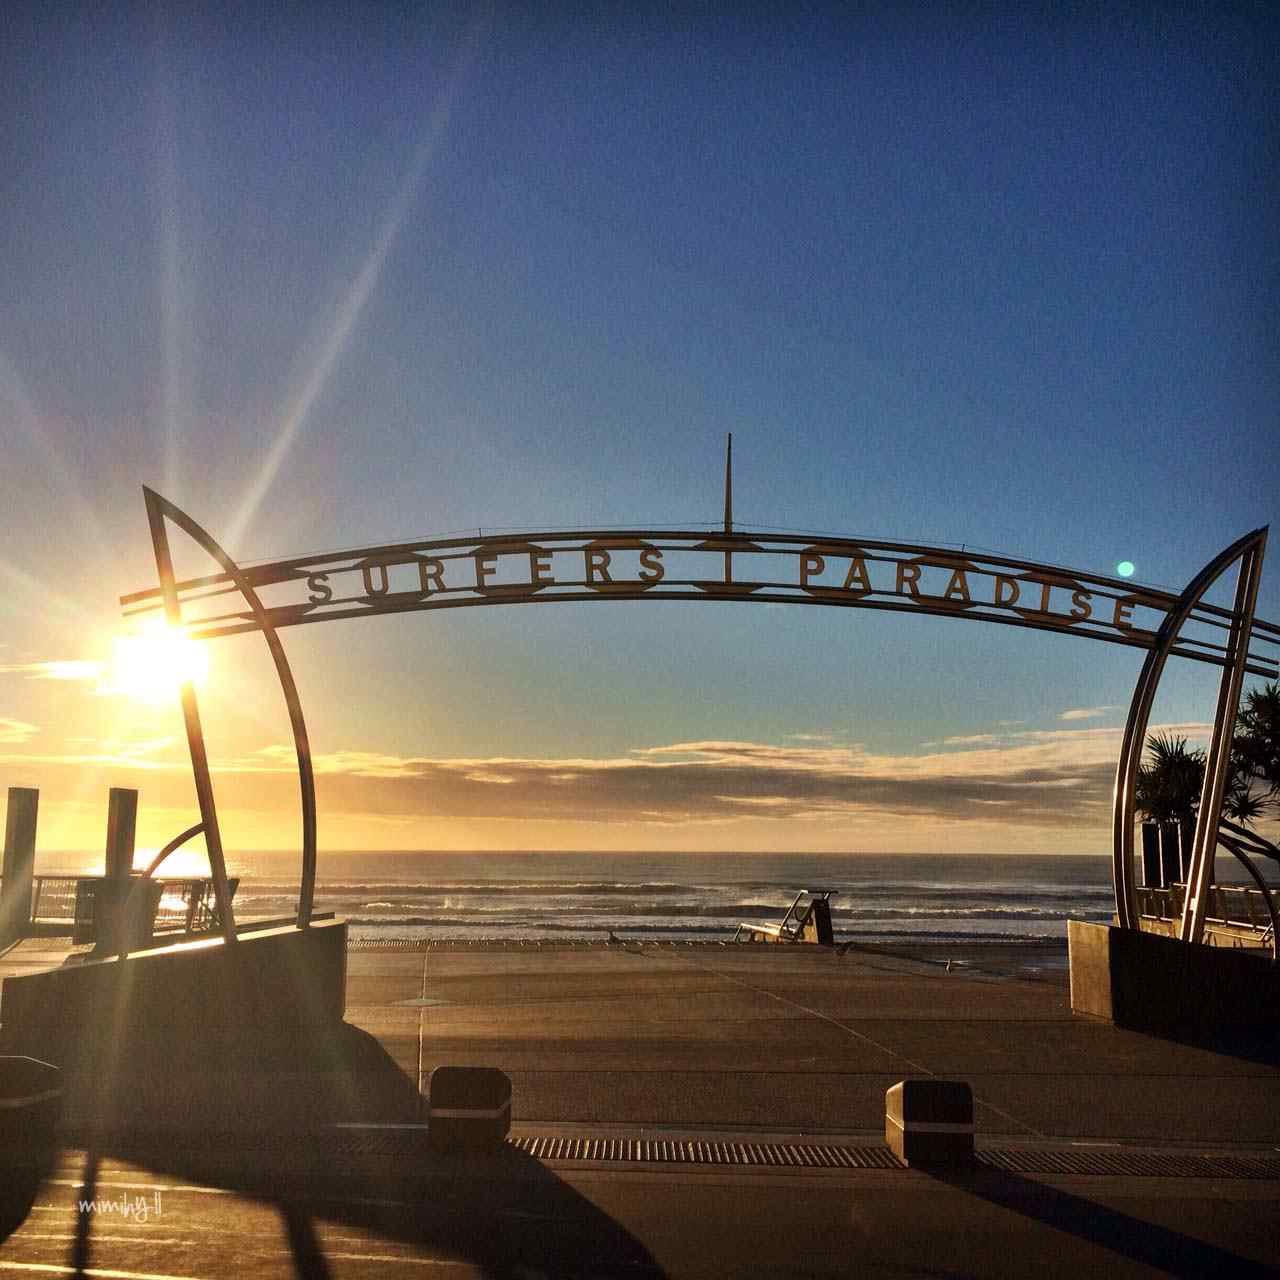 Sunrise at Surfers Paradise beach